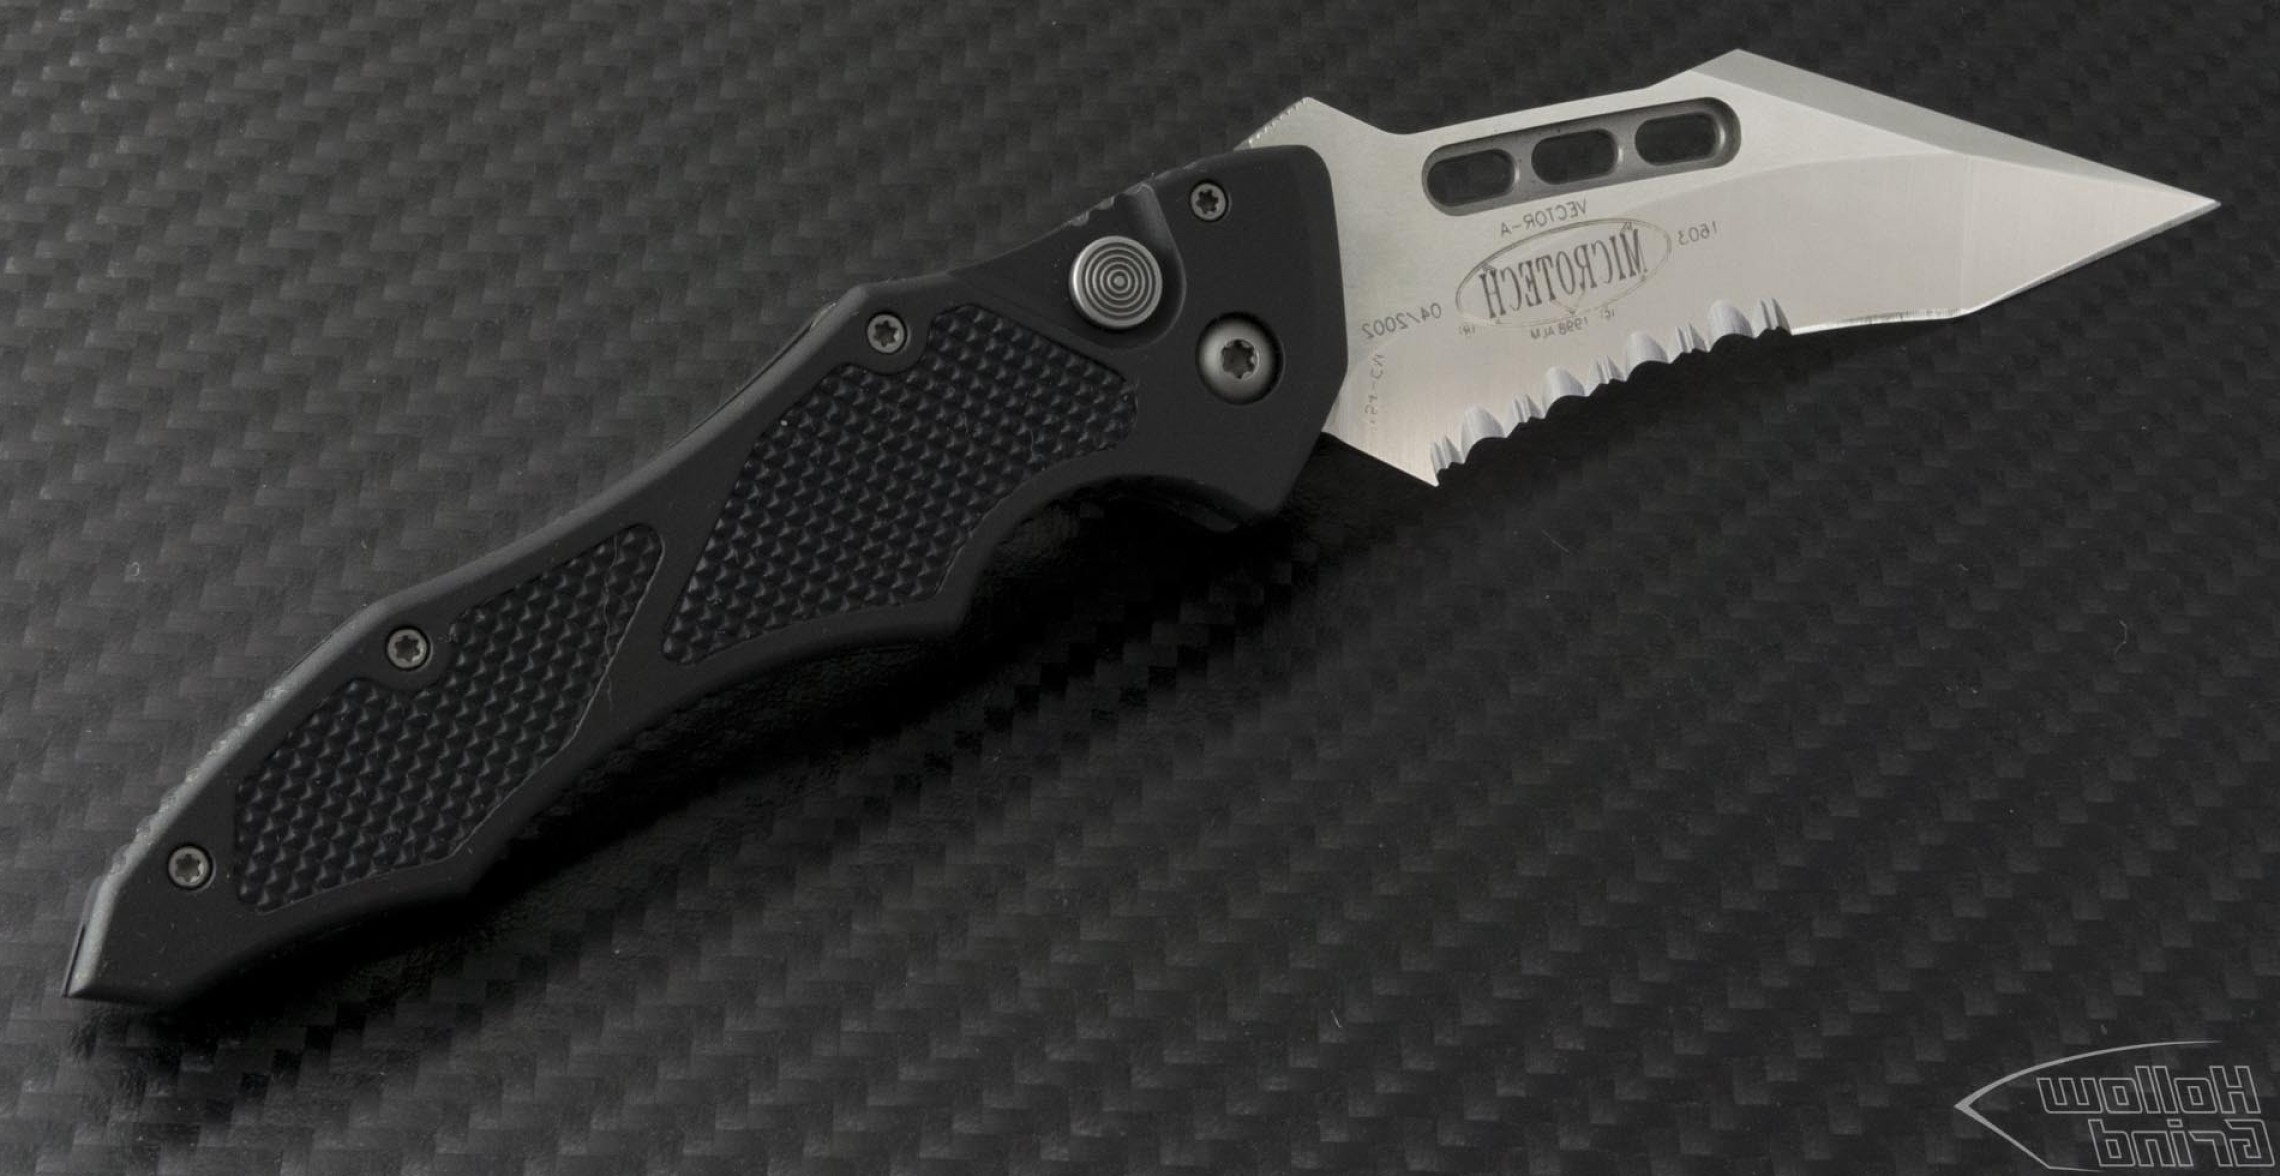 Microtech Vector: Microtech Knives Vector Se Automatic Folder Sa Knife In Satin Part Serr Cm Vnt